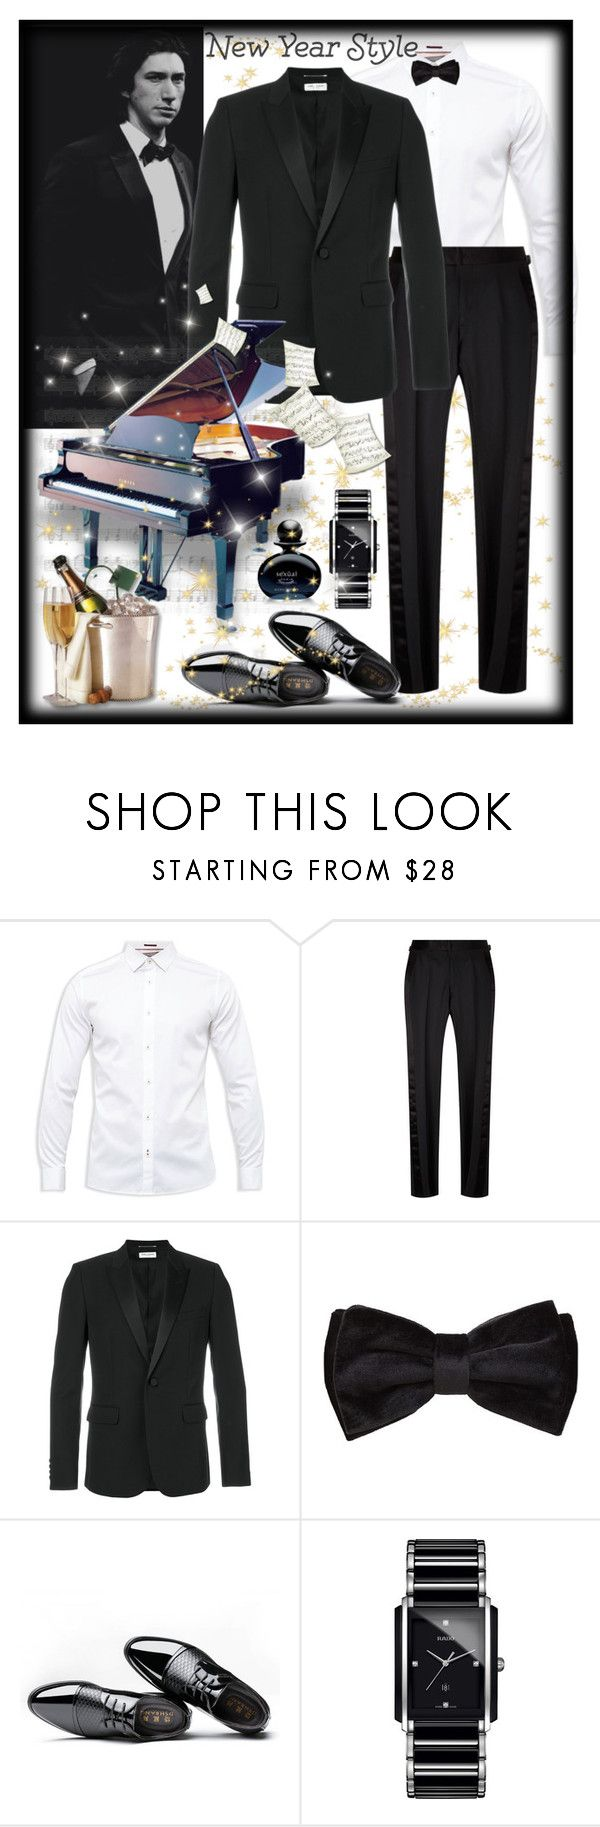 """""""Styled For The New Year's Eve"""" by giovanina-001 ❤ liked on Polyvore featuring Ted Baker, ADAM, Tom Ford, Yves Saint Laurent, MANGO, Rado, Michel Germain, men's fashion and menswear"""